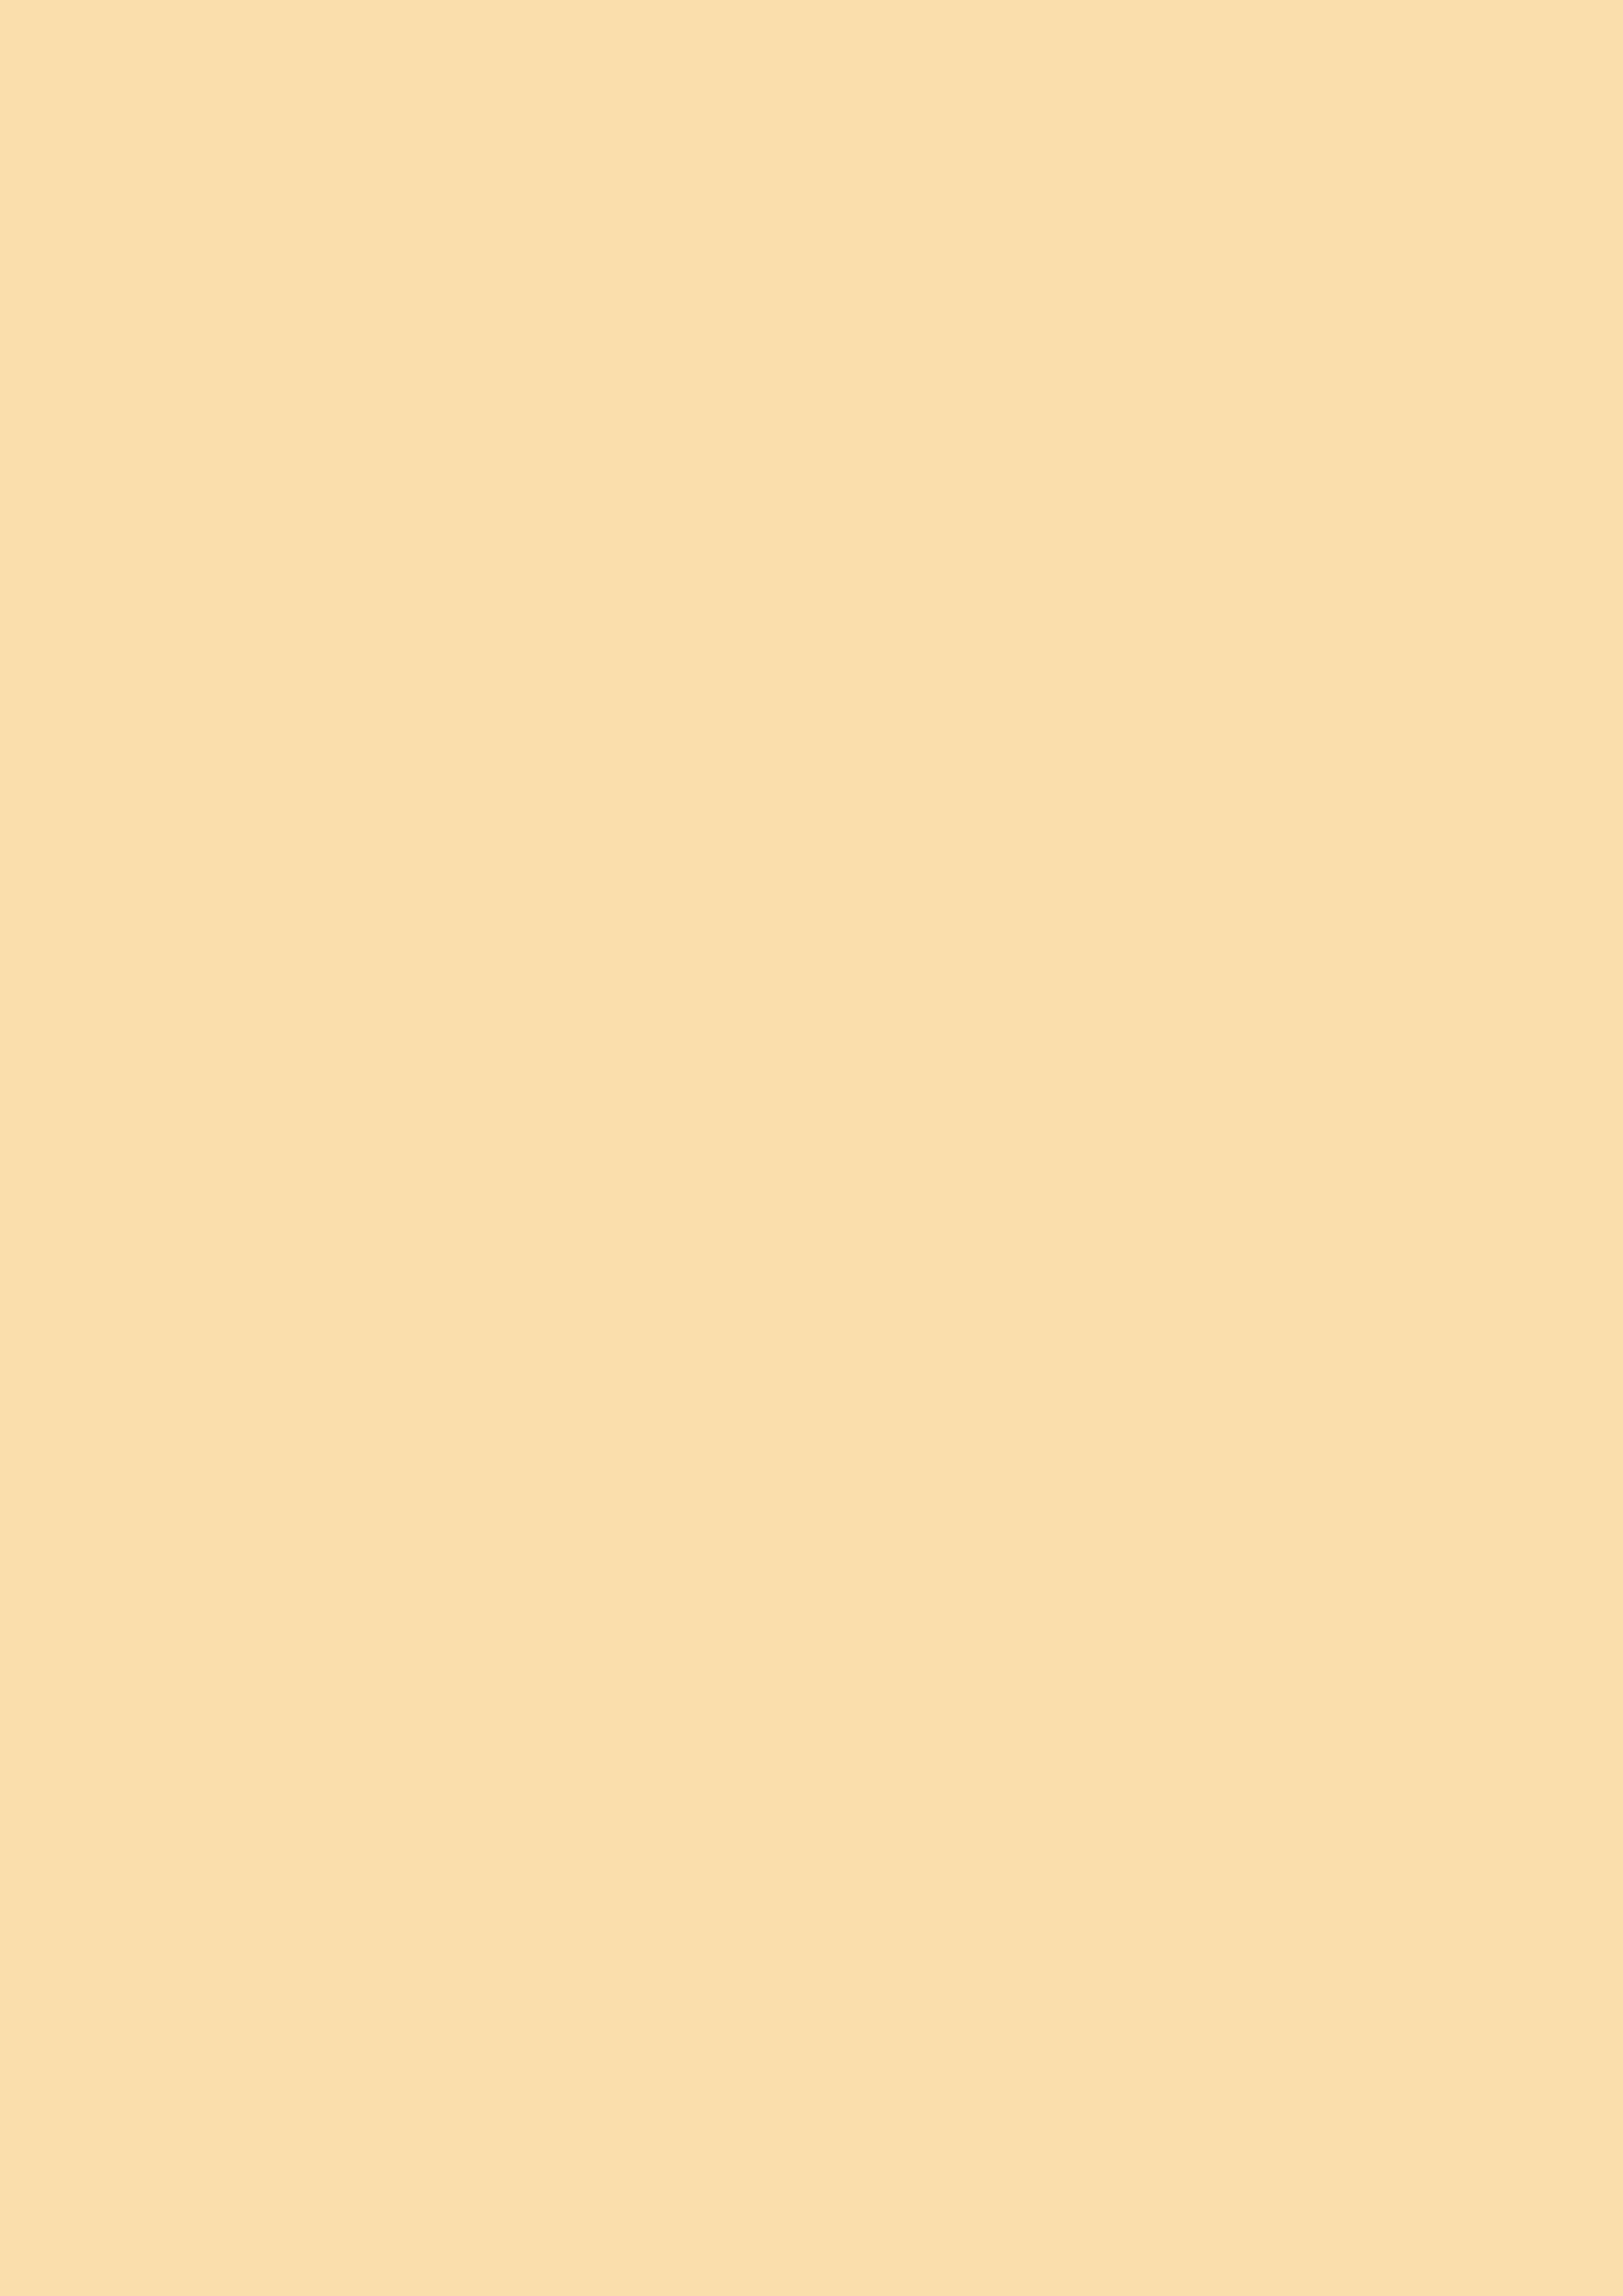 2480x3508 Peach-yellow Solid Color Background